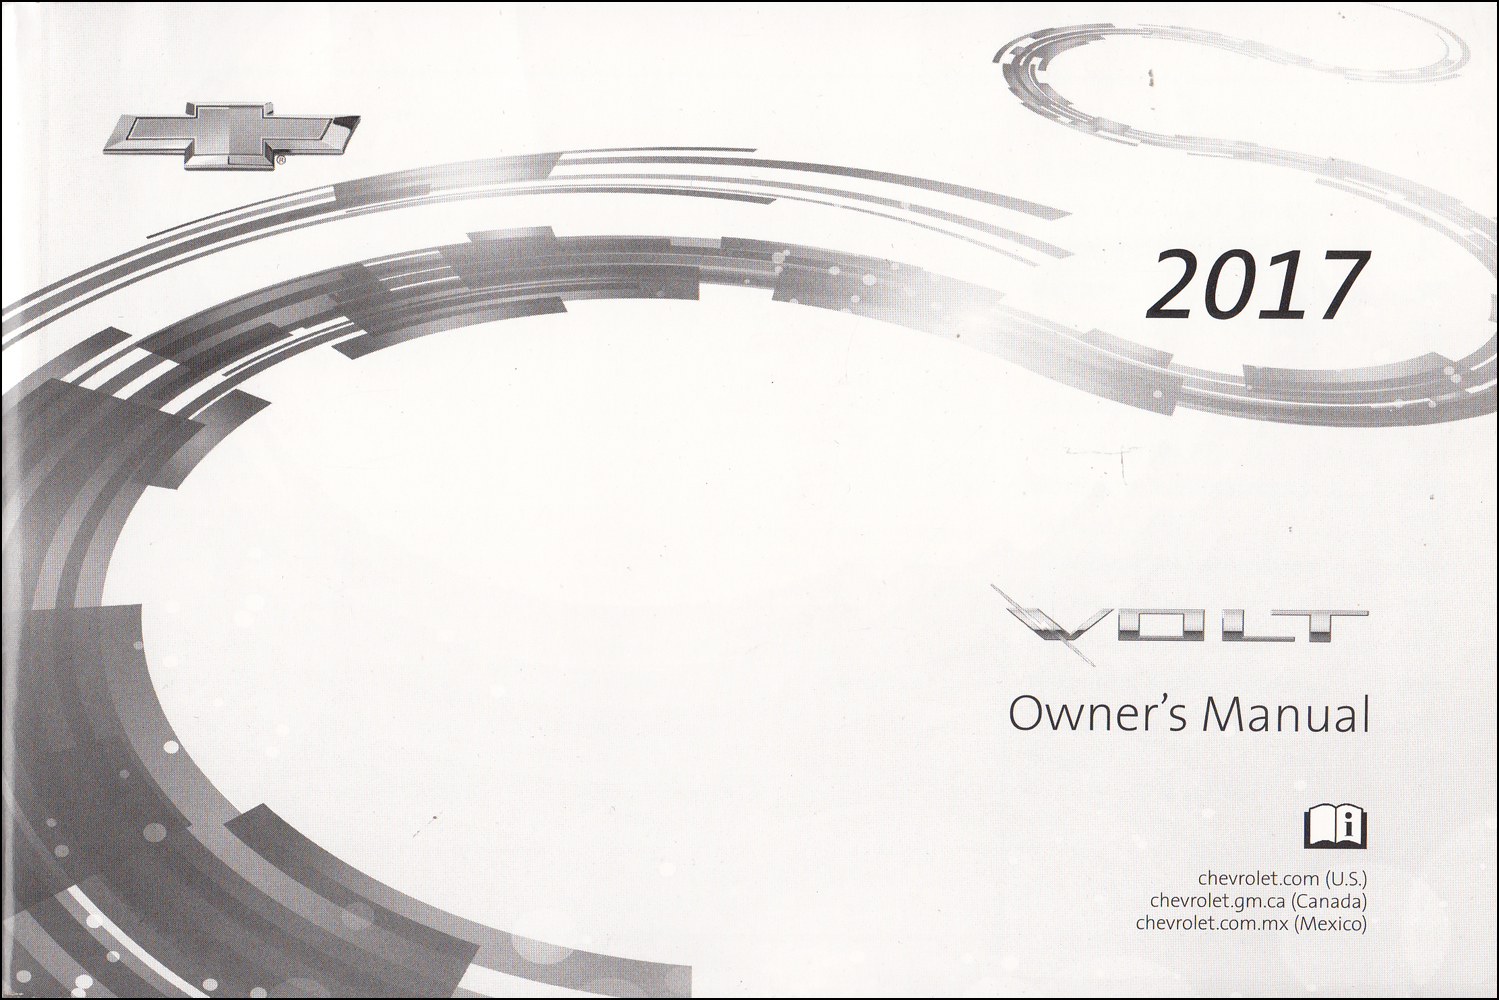 2017 Chevrolet Volt Owner's Manual Original